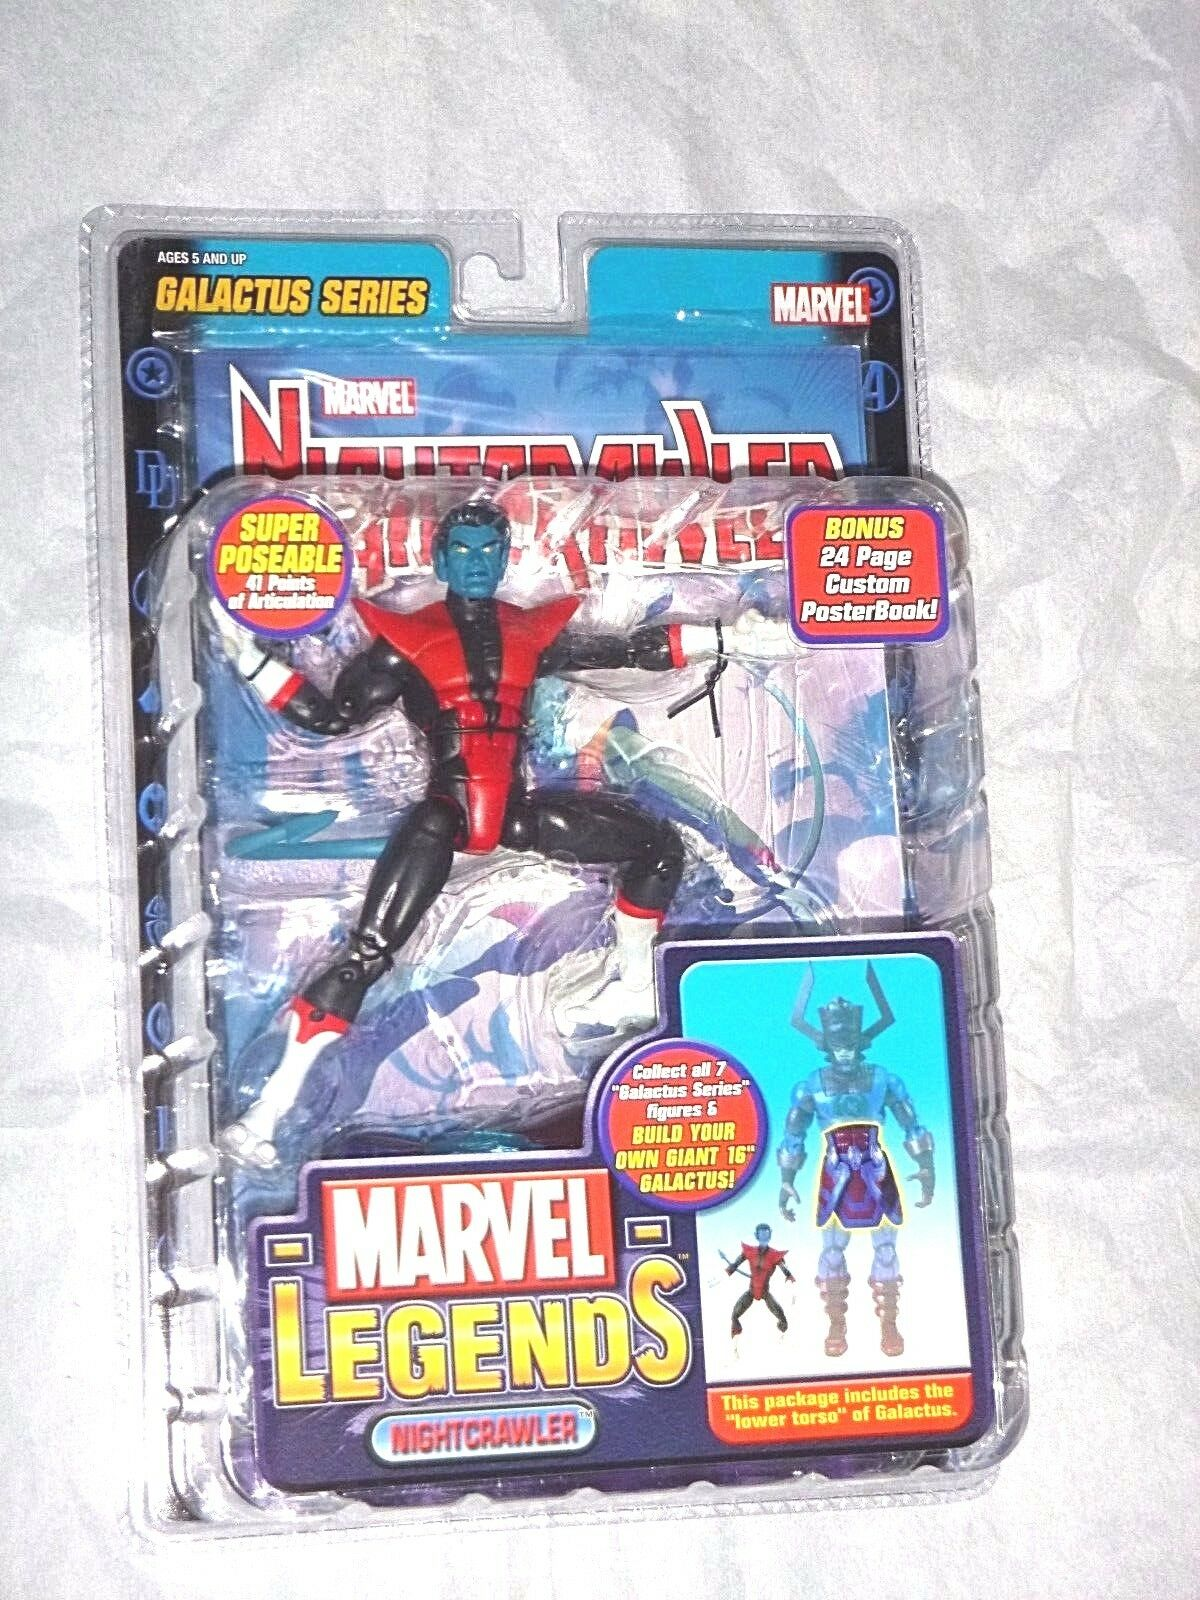 Marvel - legenden nightcrawler galactus serie nightcrawler marvel - universum neue